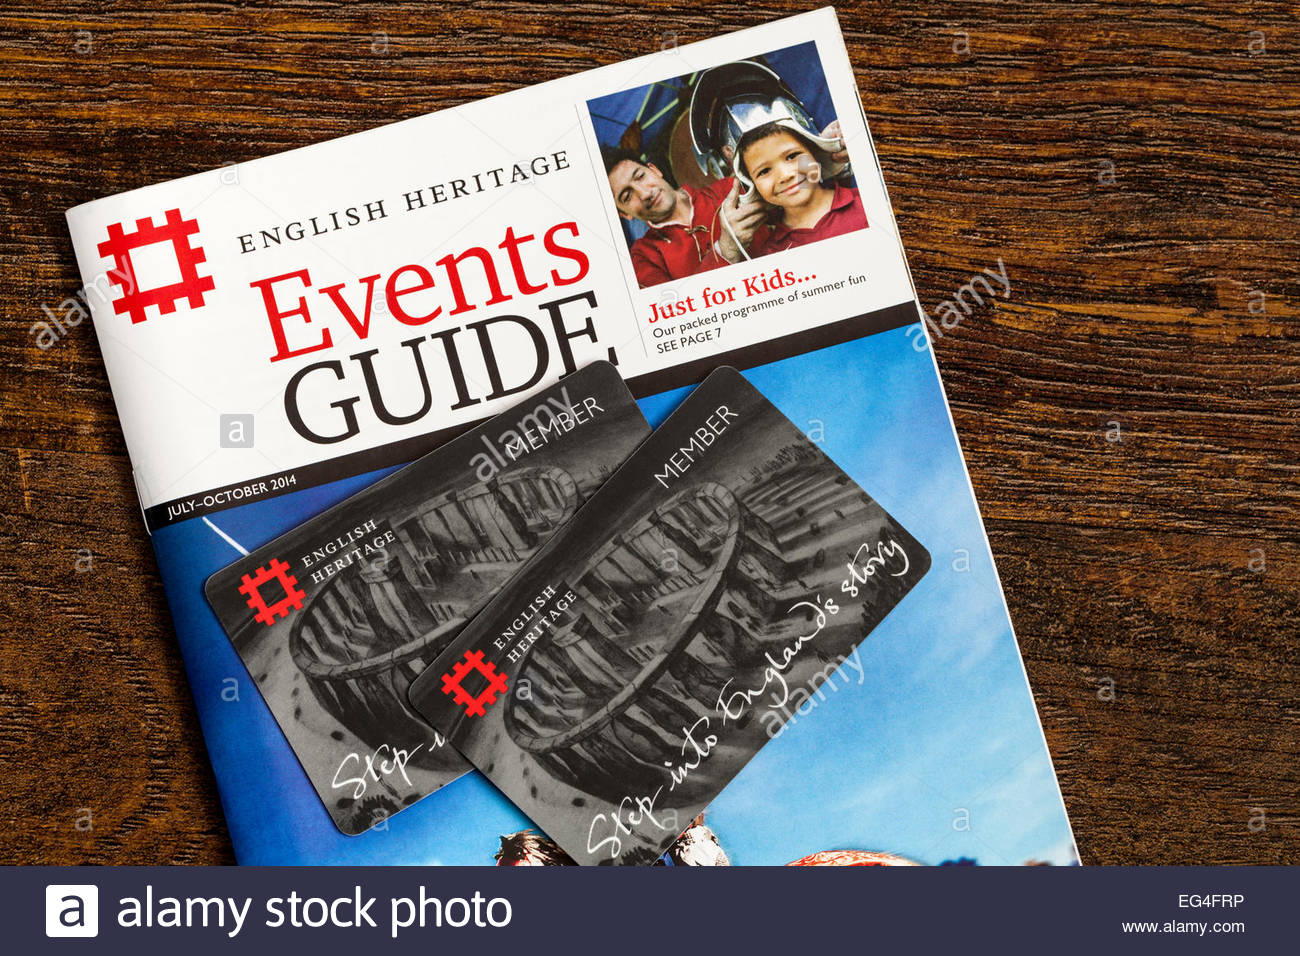 English Heritage membership cards and events guide - FOR EDITORIAL USE - Stock Image